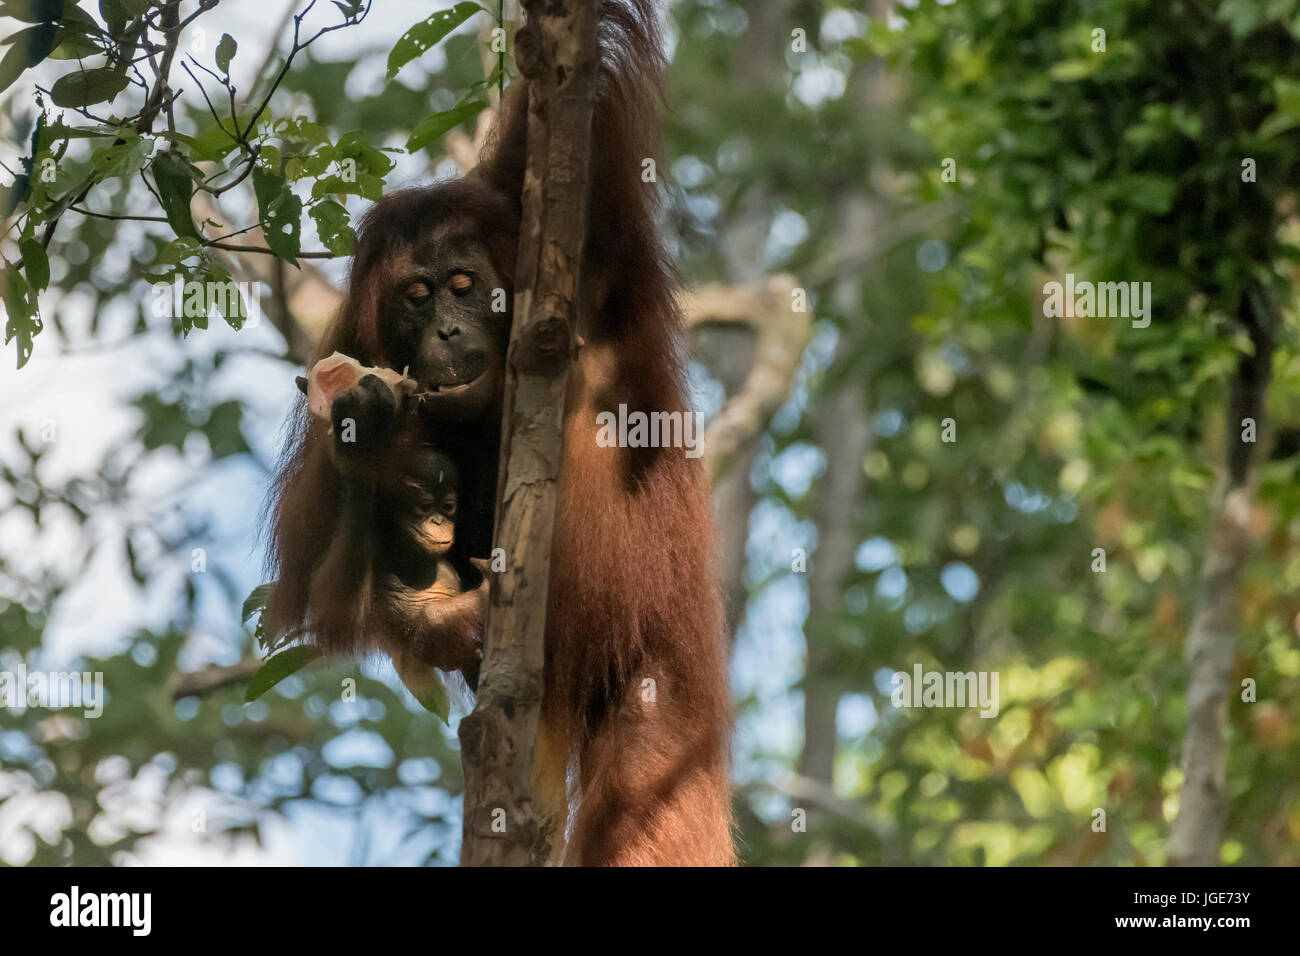 Mother orangutan hanging in a tree with a piece of fruit and a baby, Tanjung Puting NP, Kalimantan, Indonesia - Stock Image